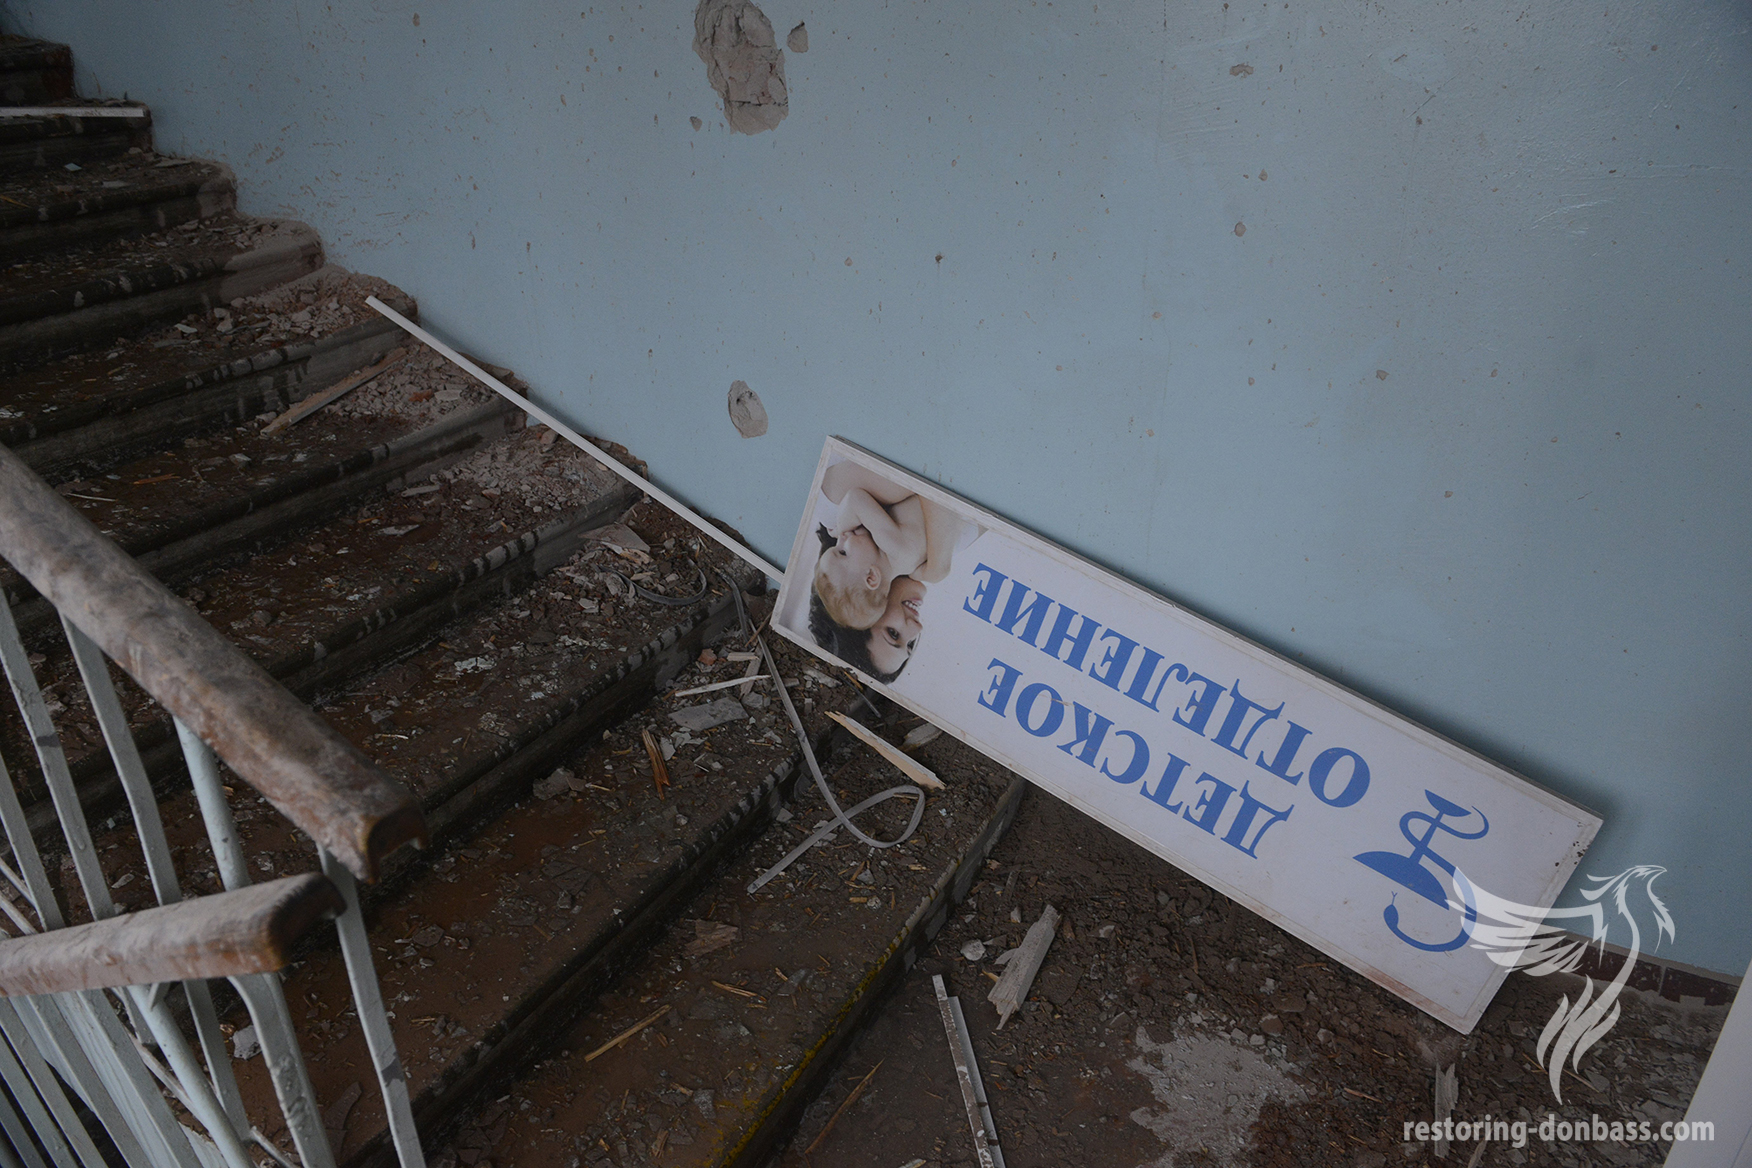 Children's branch of Donetsk hospital in Donetsk came under fire, May 3, 2015